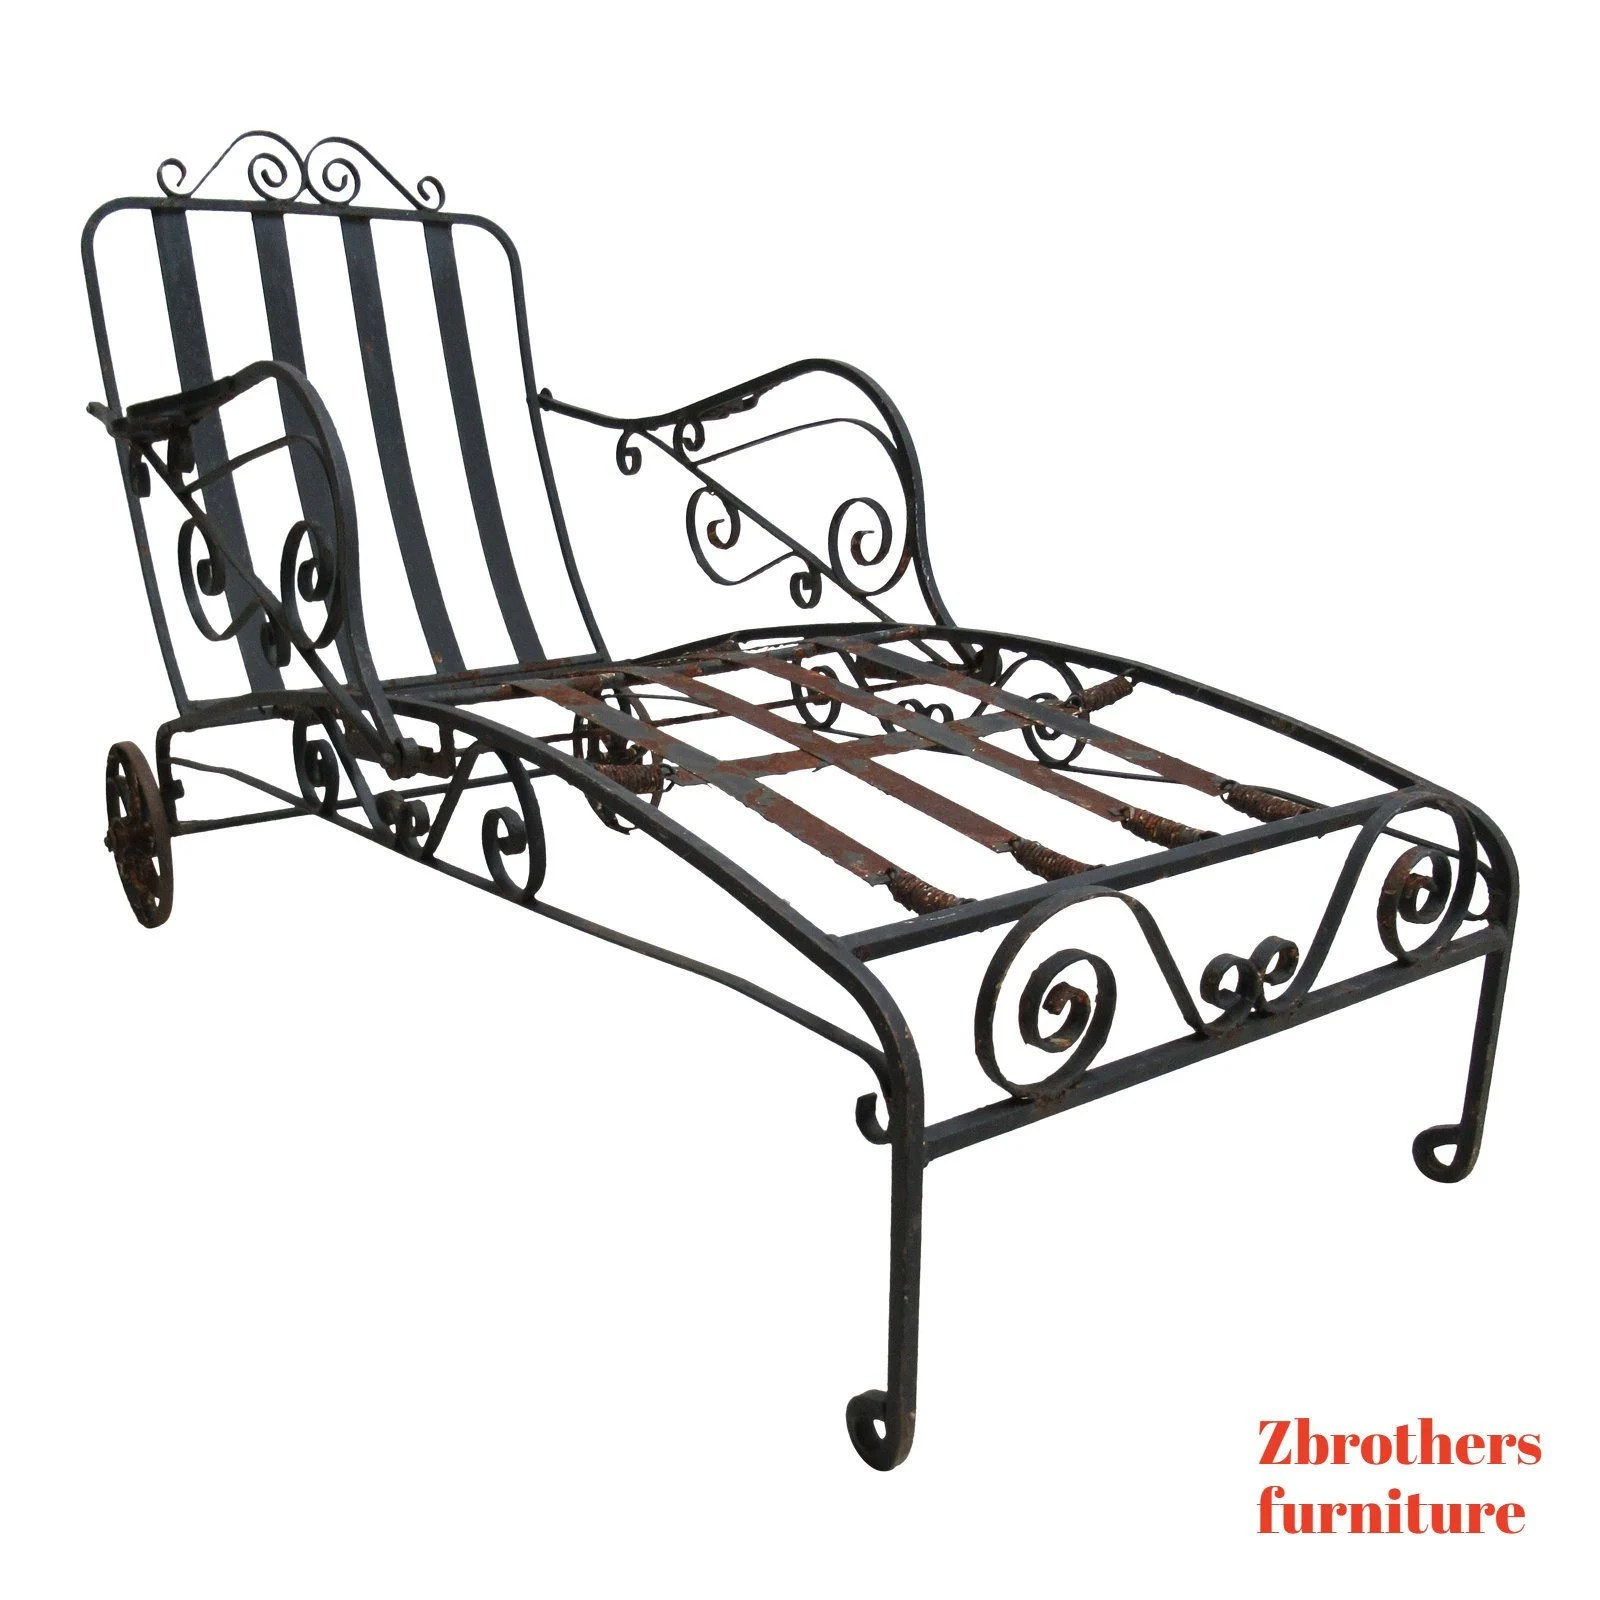 Z Brothers Furniture